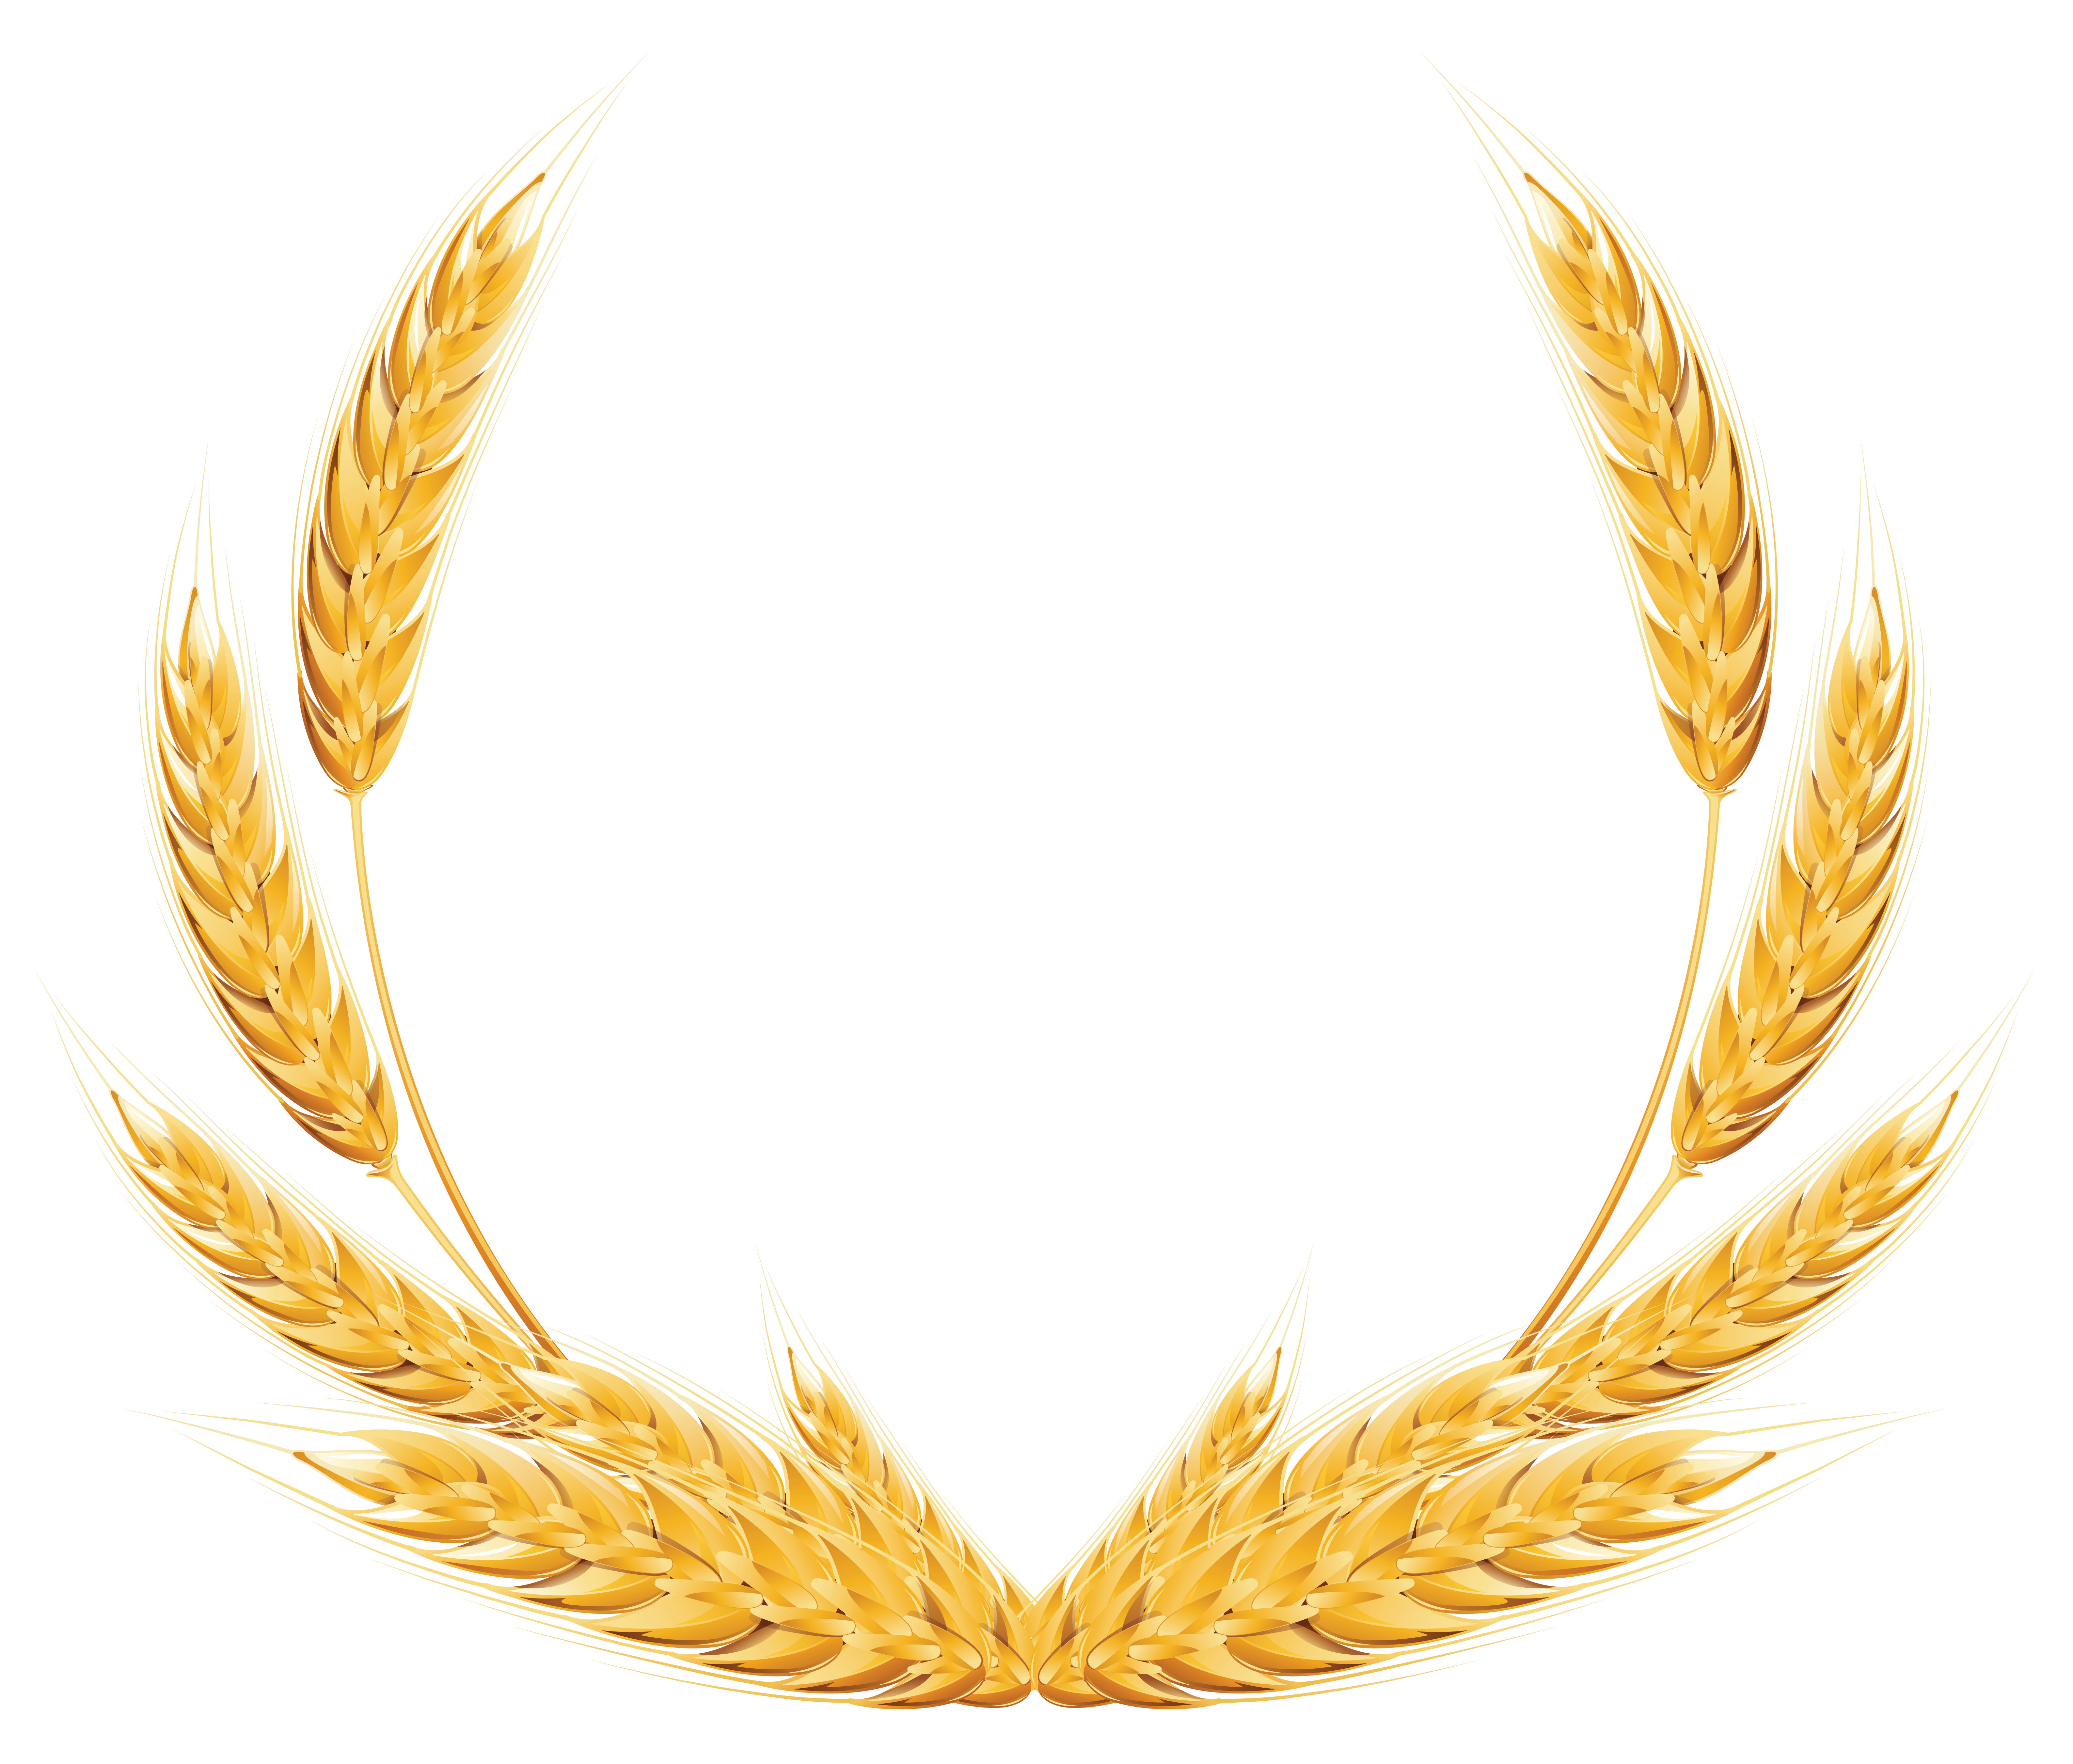 Thanksgiving wheat clipart png royalty free stock Wheat Decoration PNG Clipart Image | Gallery Yopriceville - High ... png royalty free stock